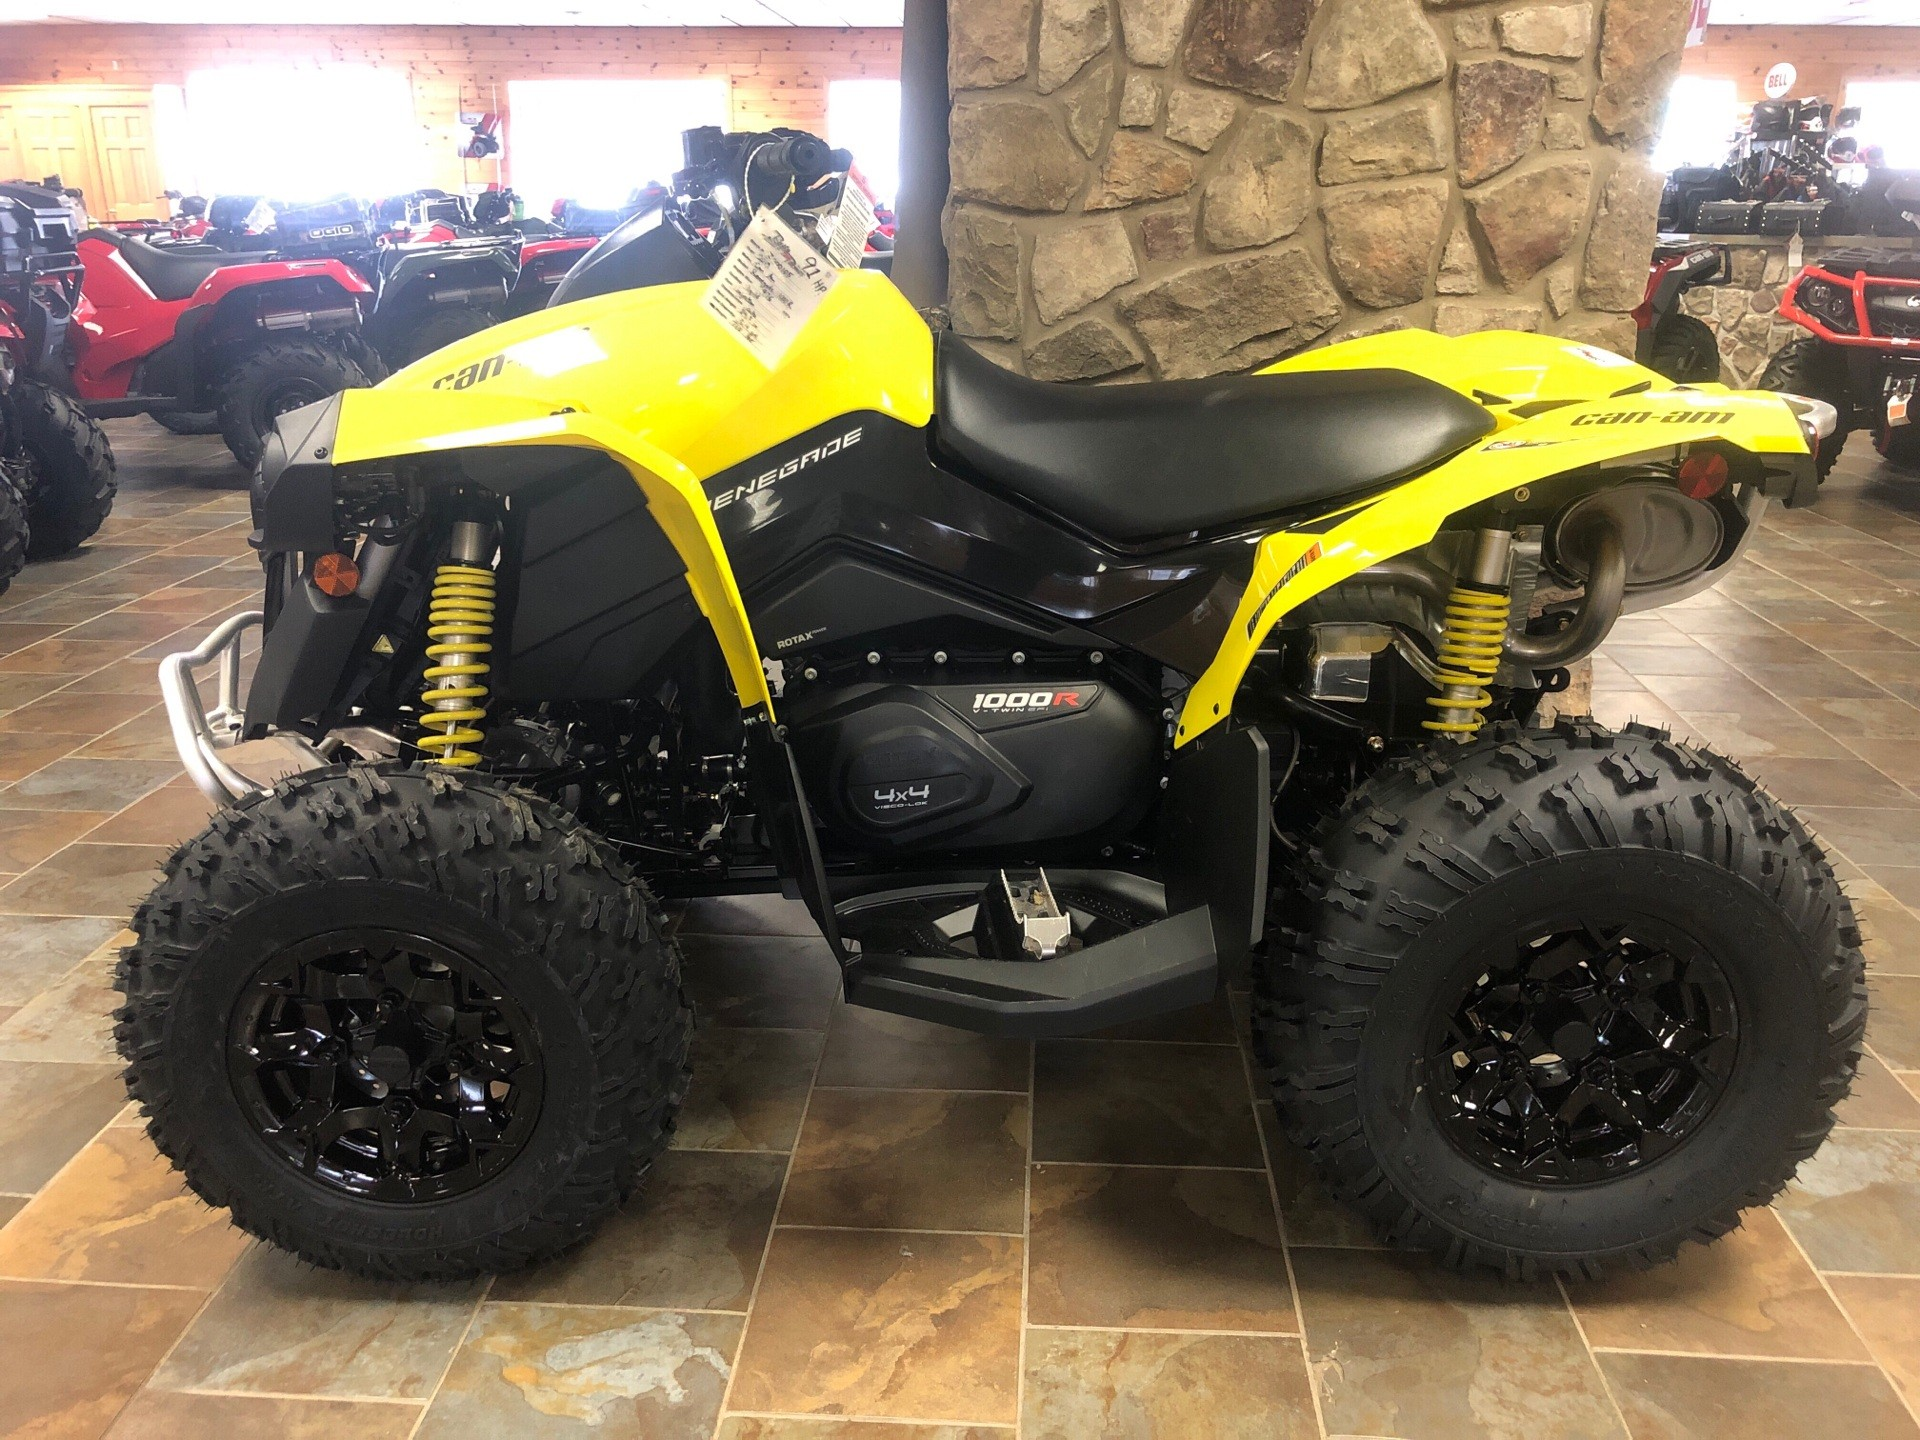 2019 Can-Am Renegade 1000R in Honesdale, Pennsylvania - Photo 1